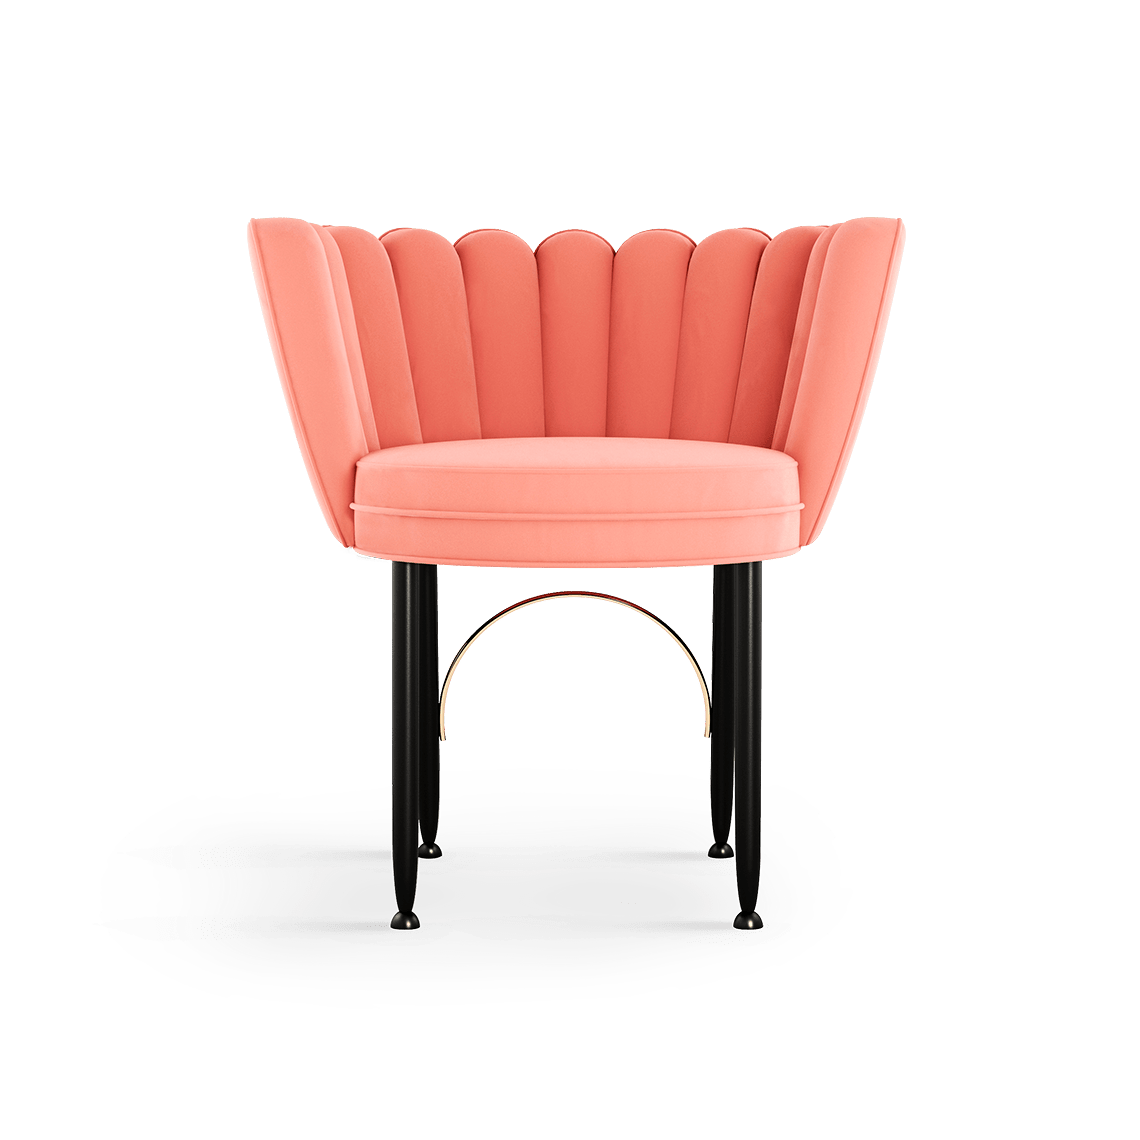 Angel Mid-Century Dining Chair in coral cotton velvet